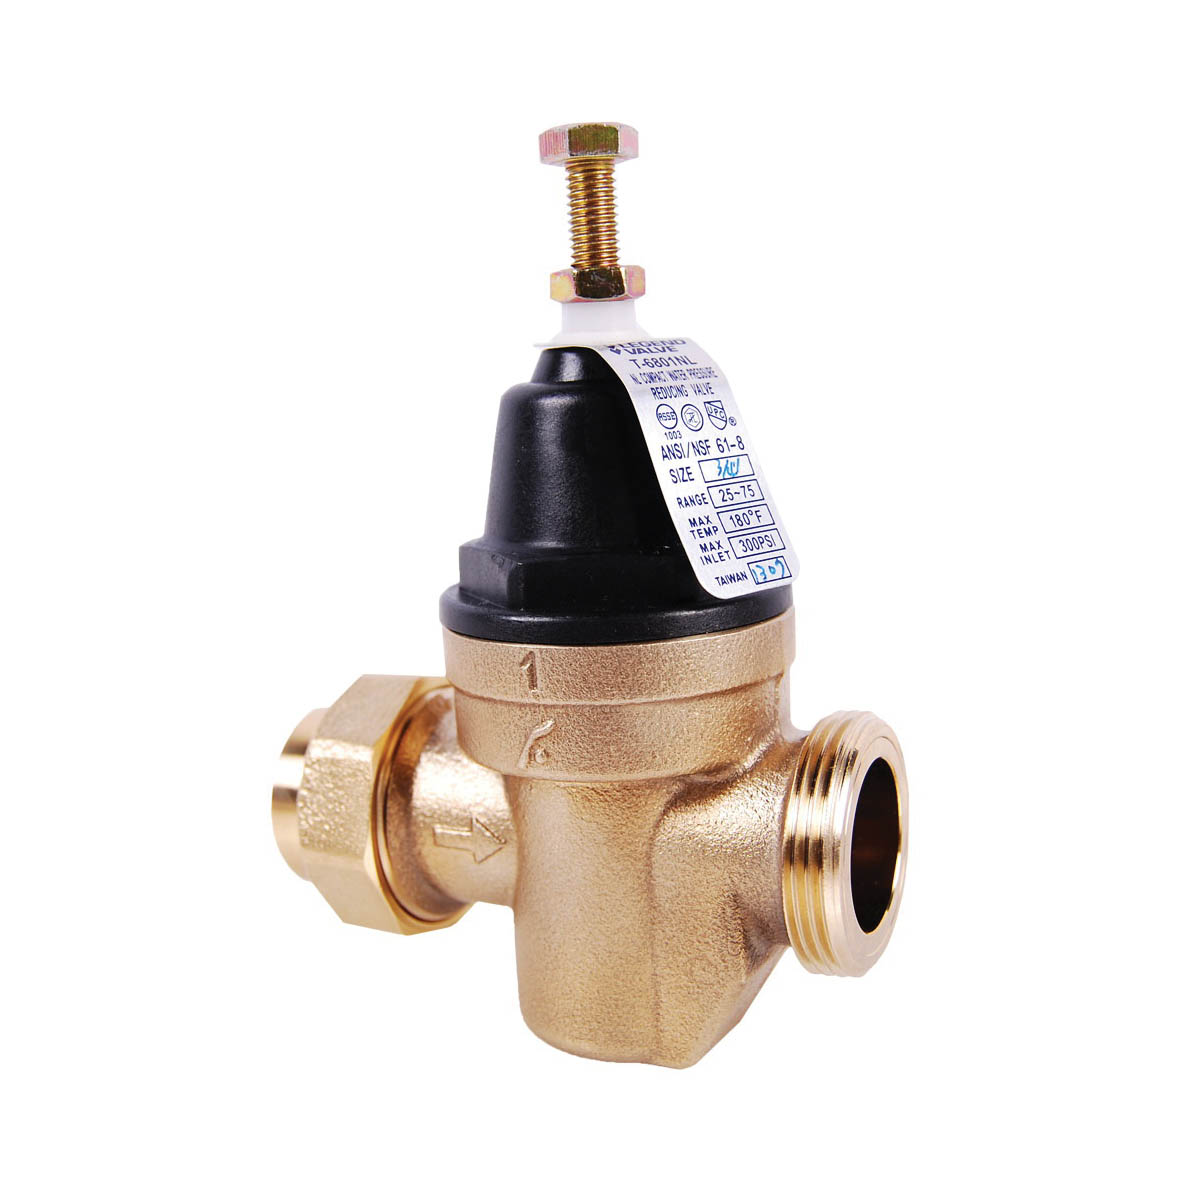 LEGEND LEGEND GREEN™ 111-335NL T-6801NL Compact Pressure Reducing Valve, 1 in, FNPT, 300 psi CWP, 25 gpm, Brass Body, Import